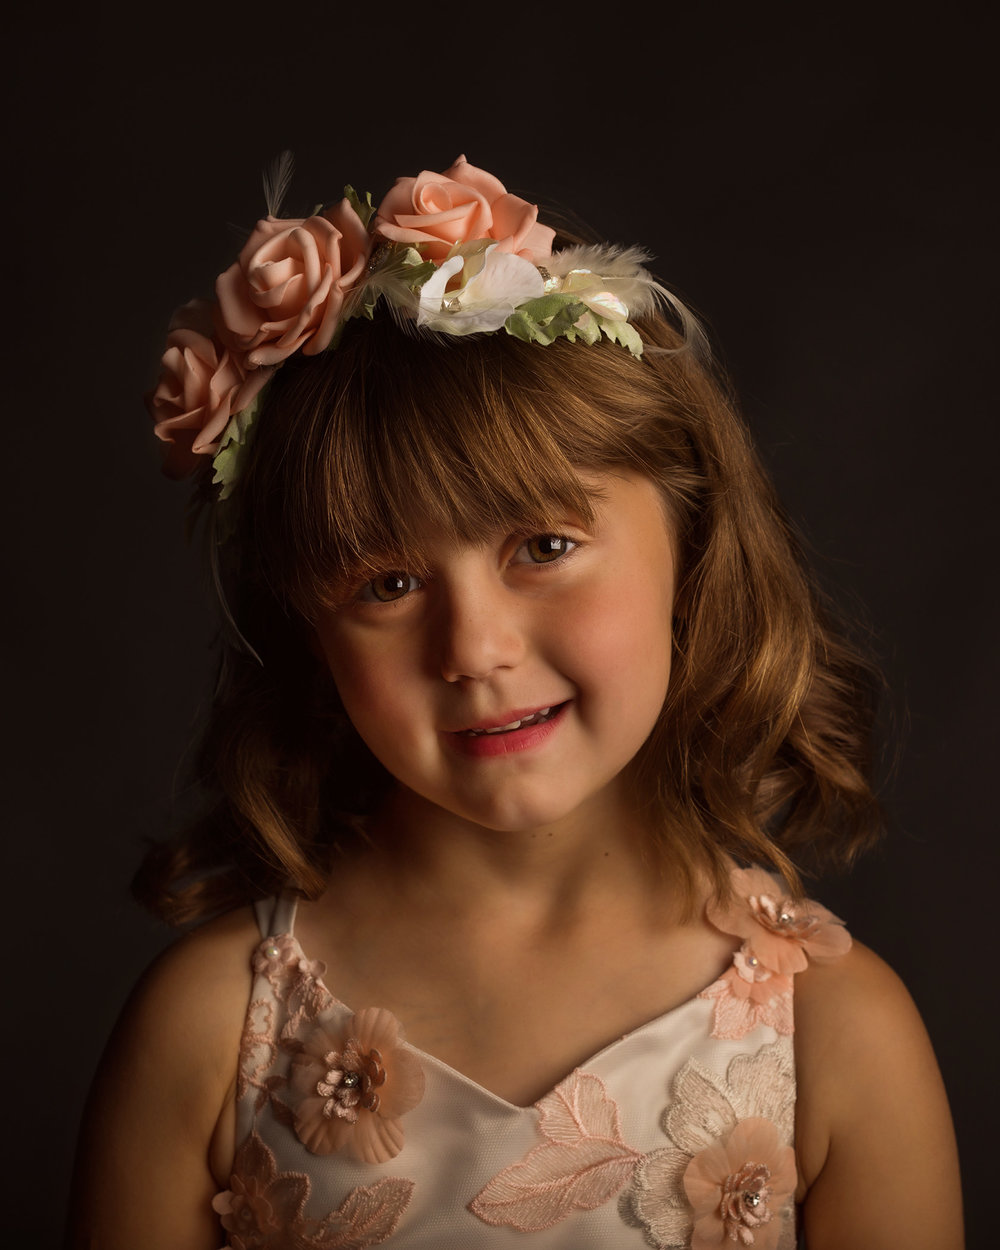 nora princess sept 2018 (7 of 44)FB.jpg